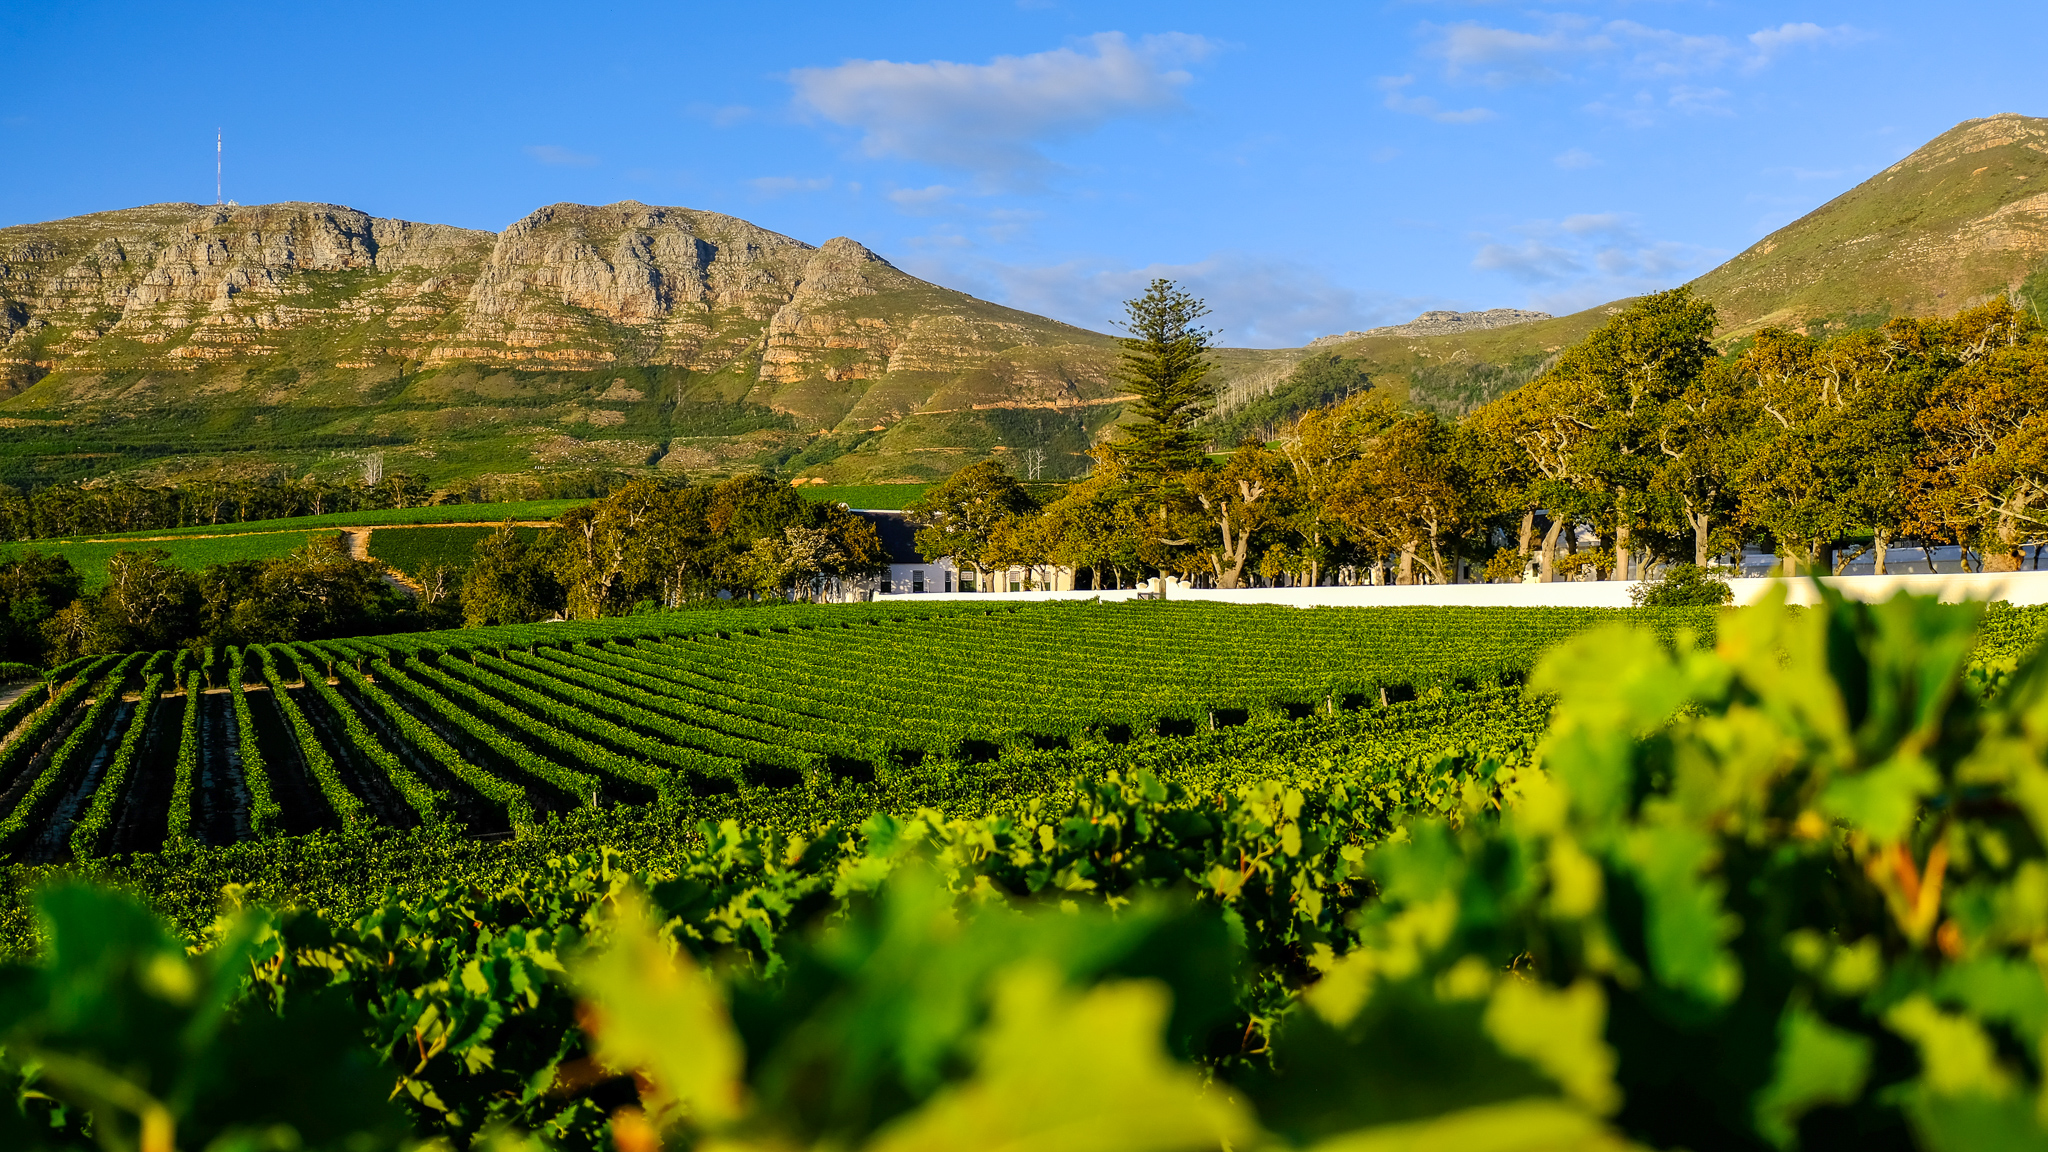 GROOT SUMMER FUN AT GROOT CONSTANTIA TO CELEBRATE THE HOLIDAYS